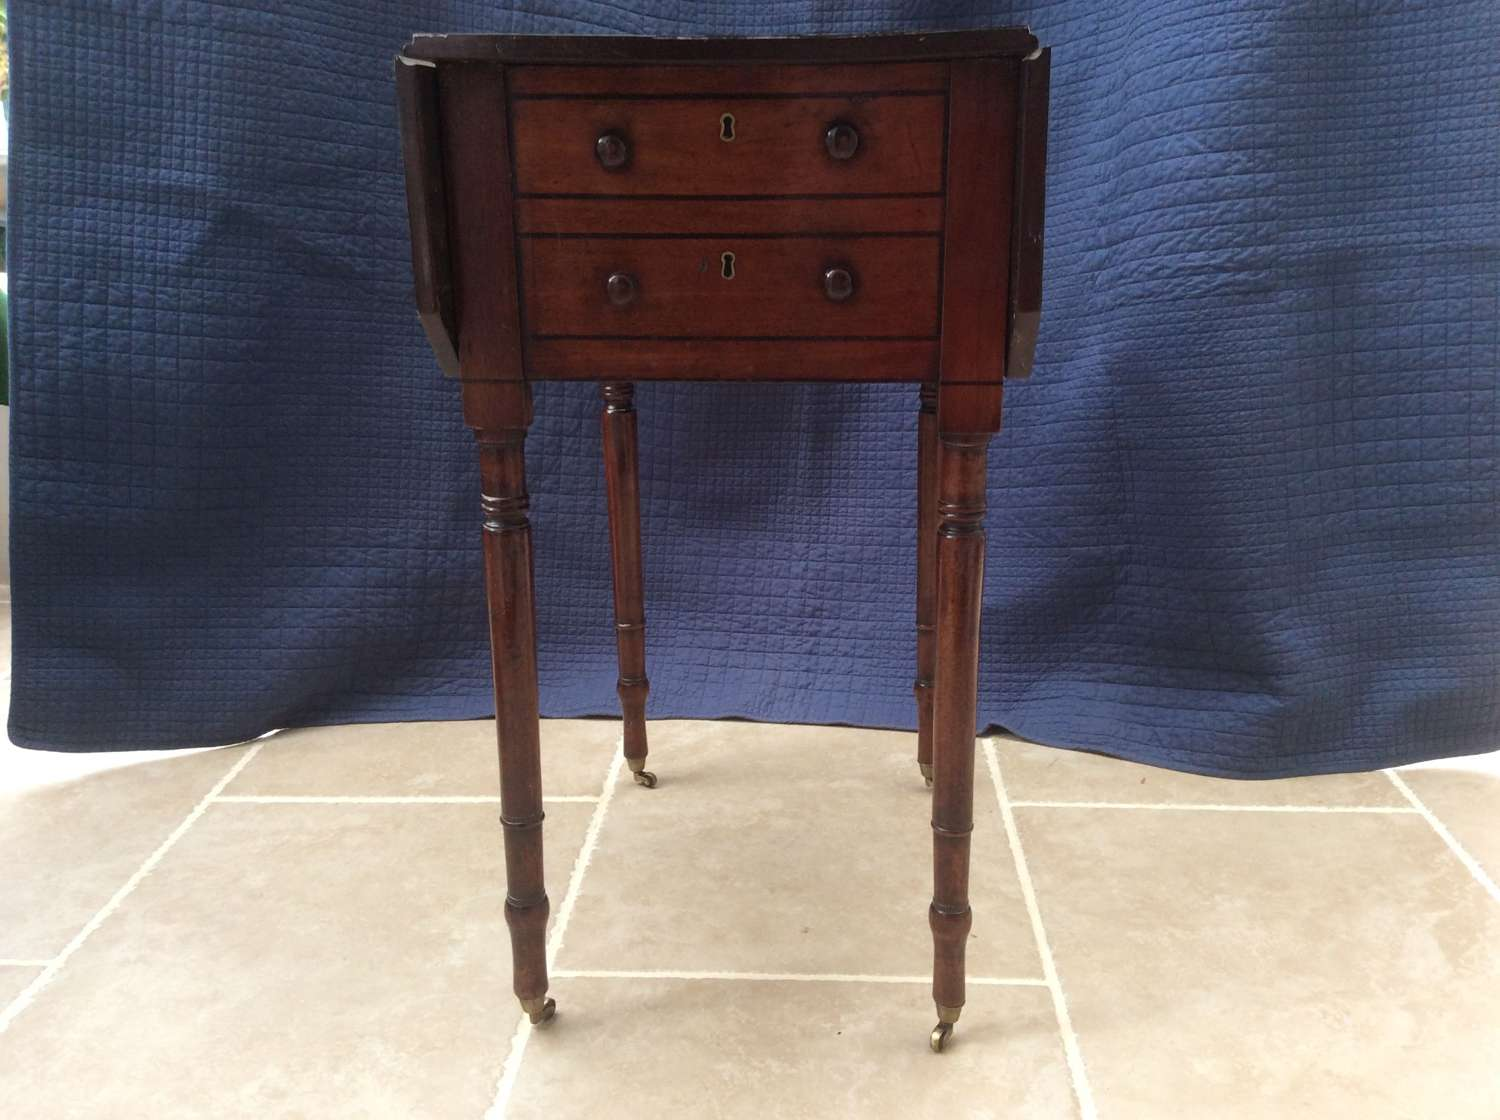 Regency mahogany Pembroke work table